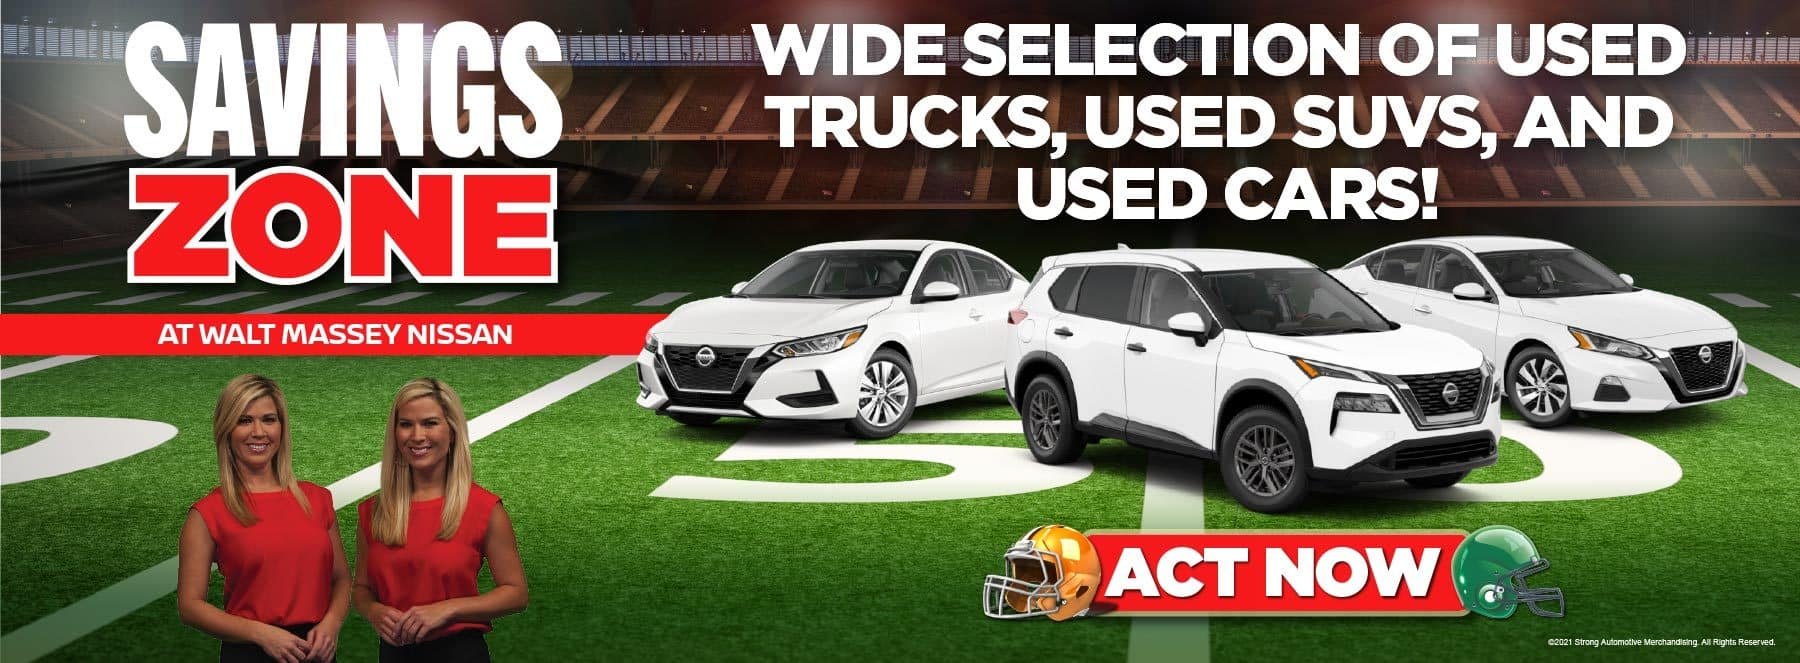 Wide Selection of Used Trucks, Used SUVs and Used Cars! Act Now.